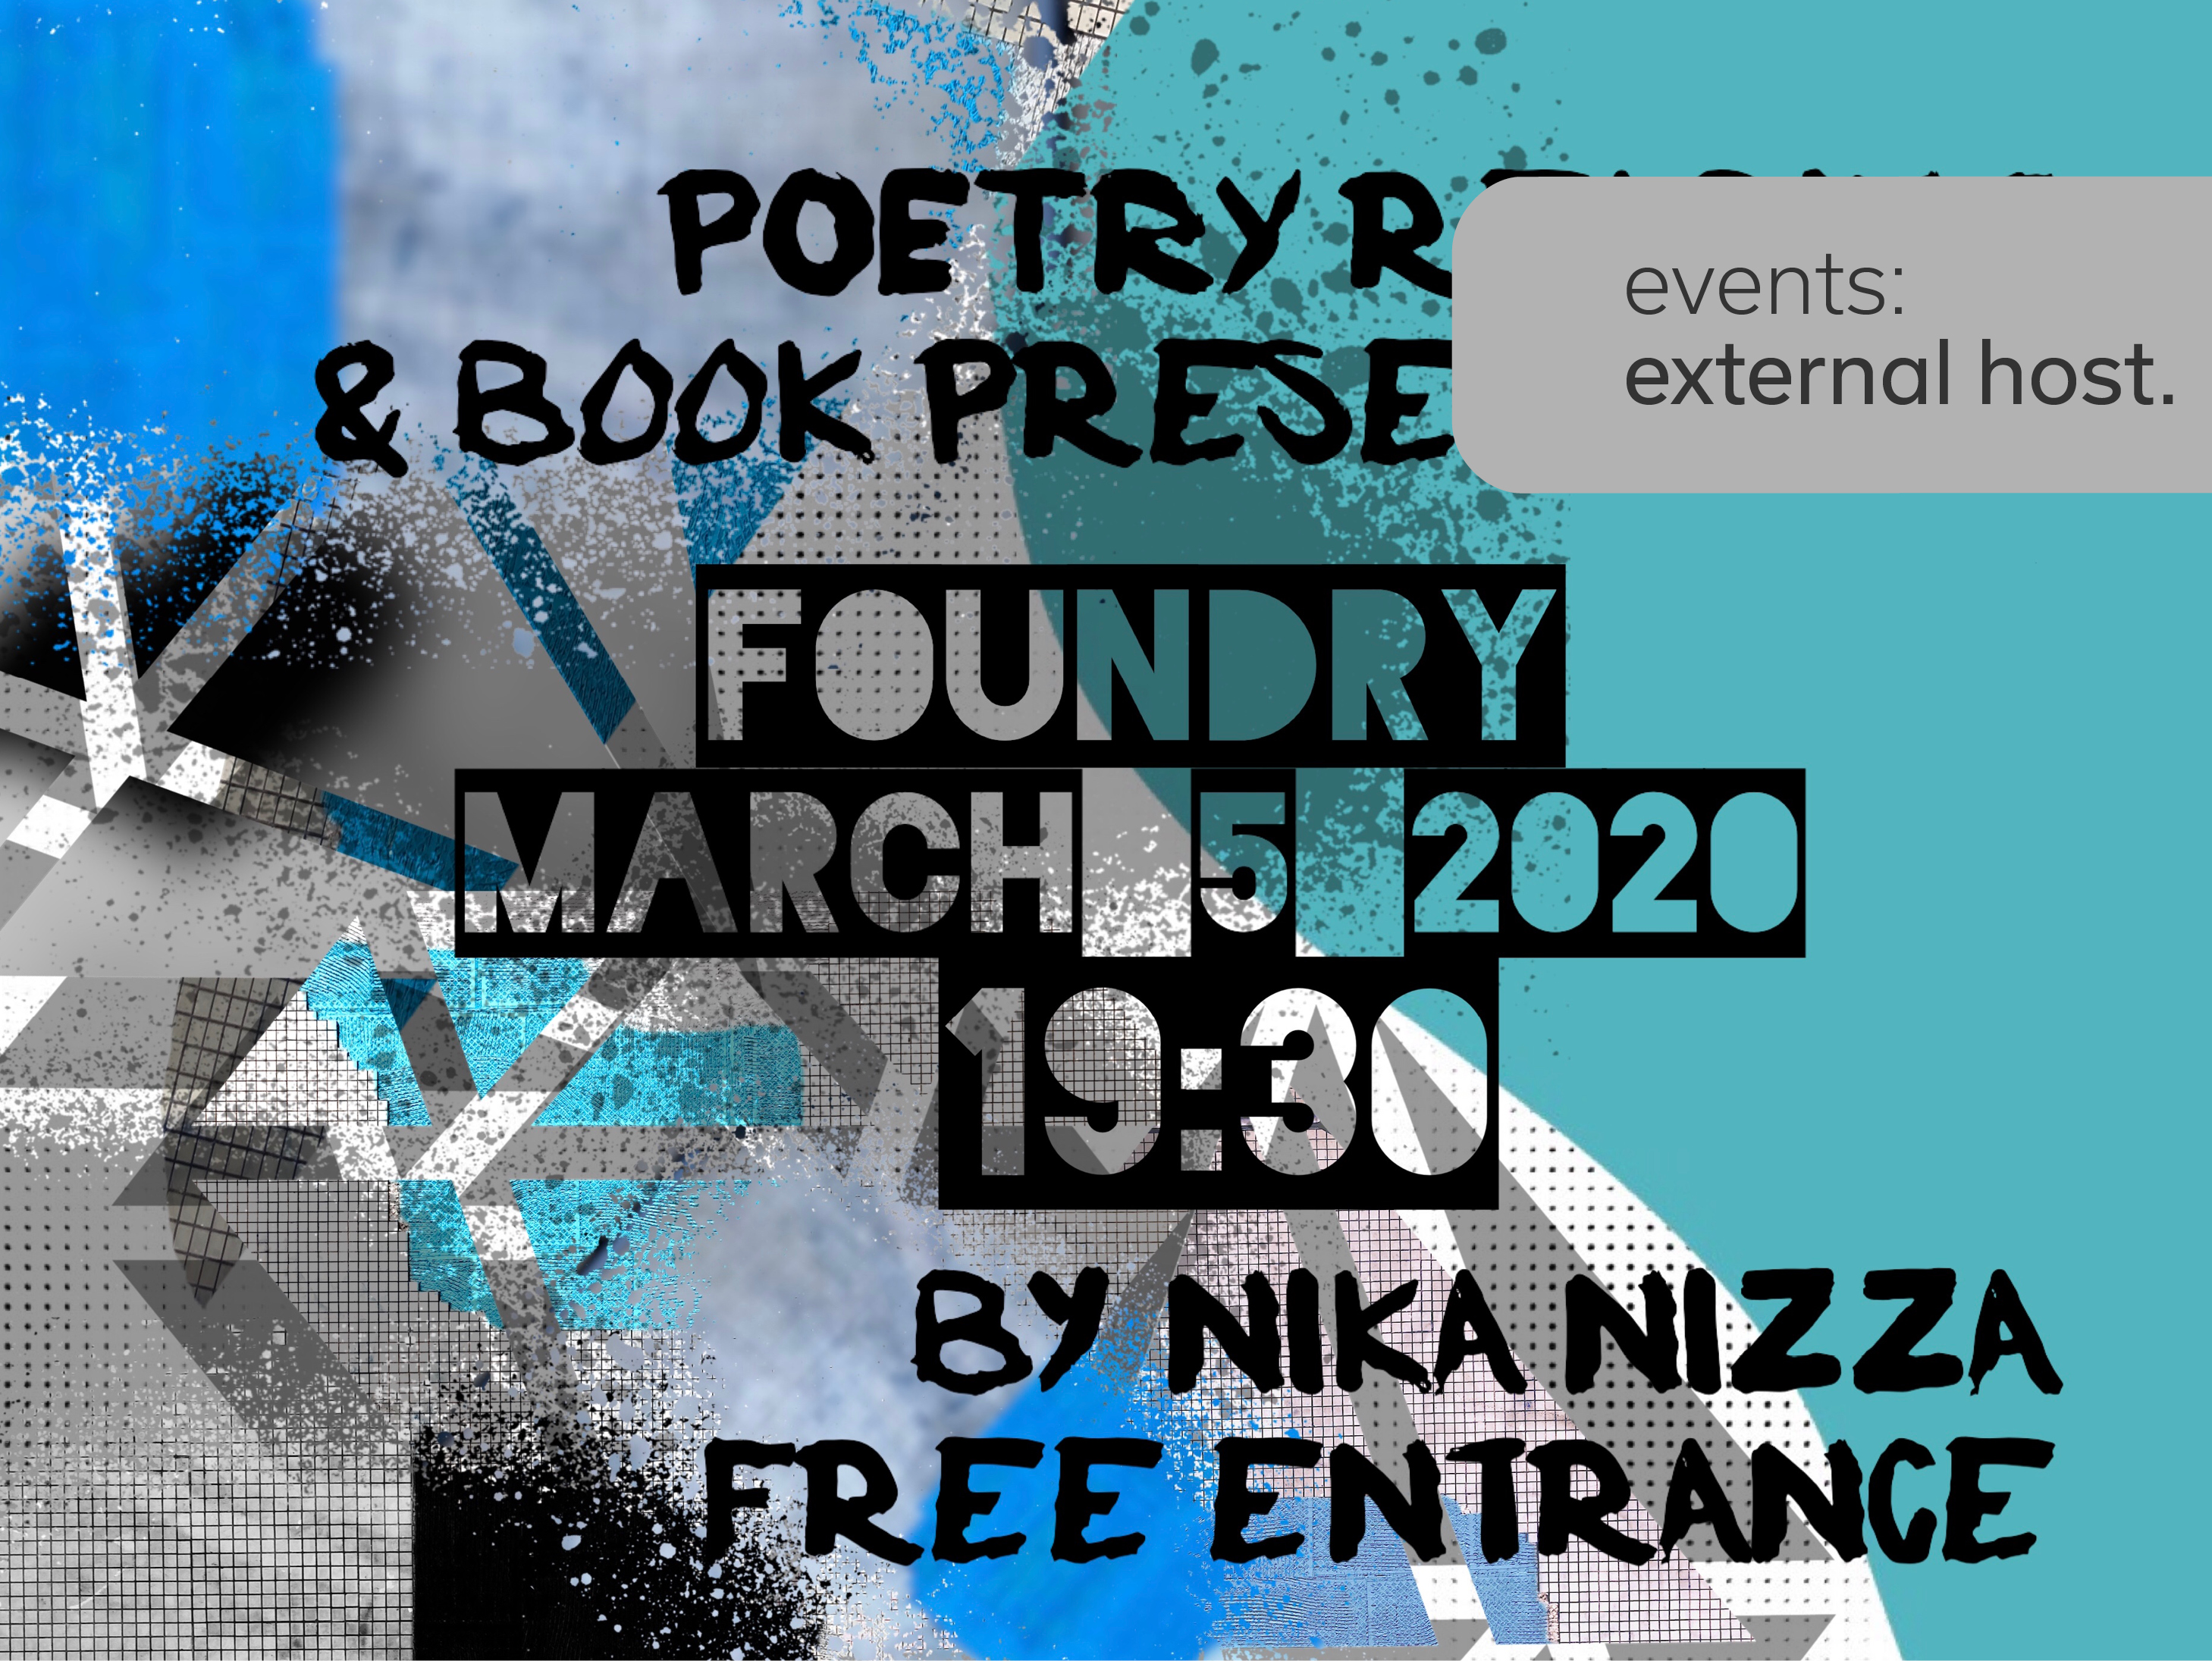 Poetry reading and book presentation — Nika Nizza